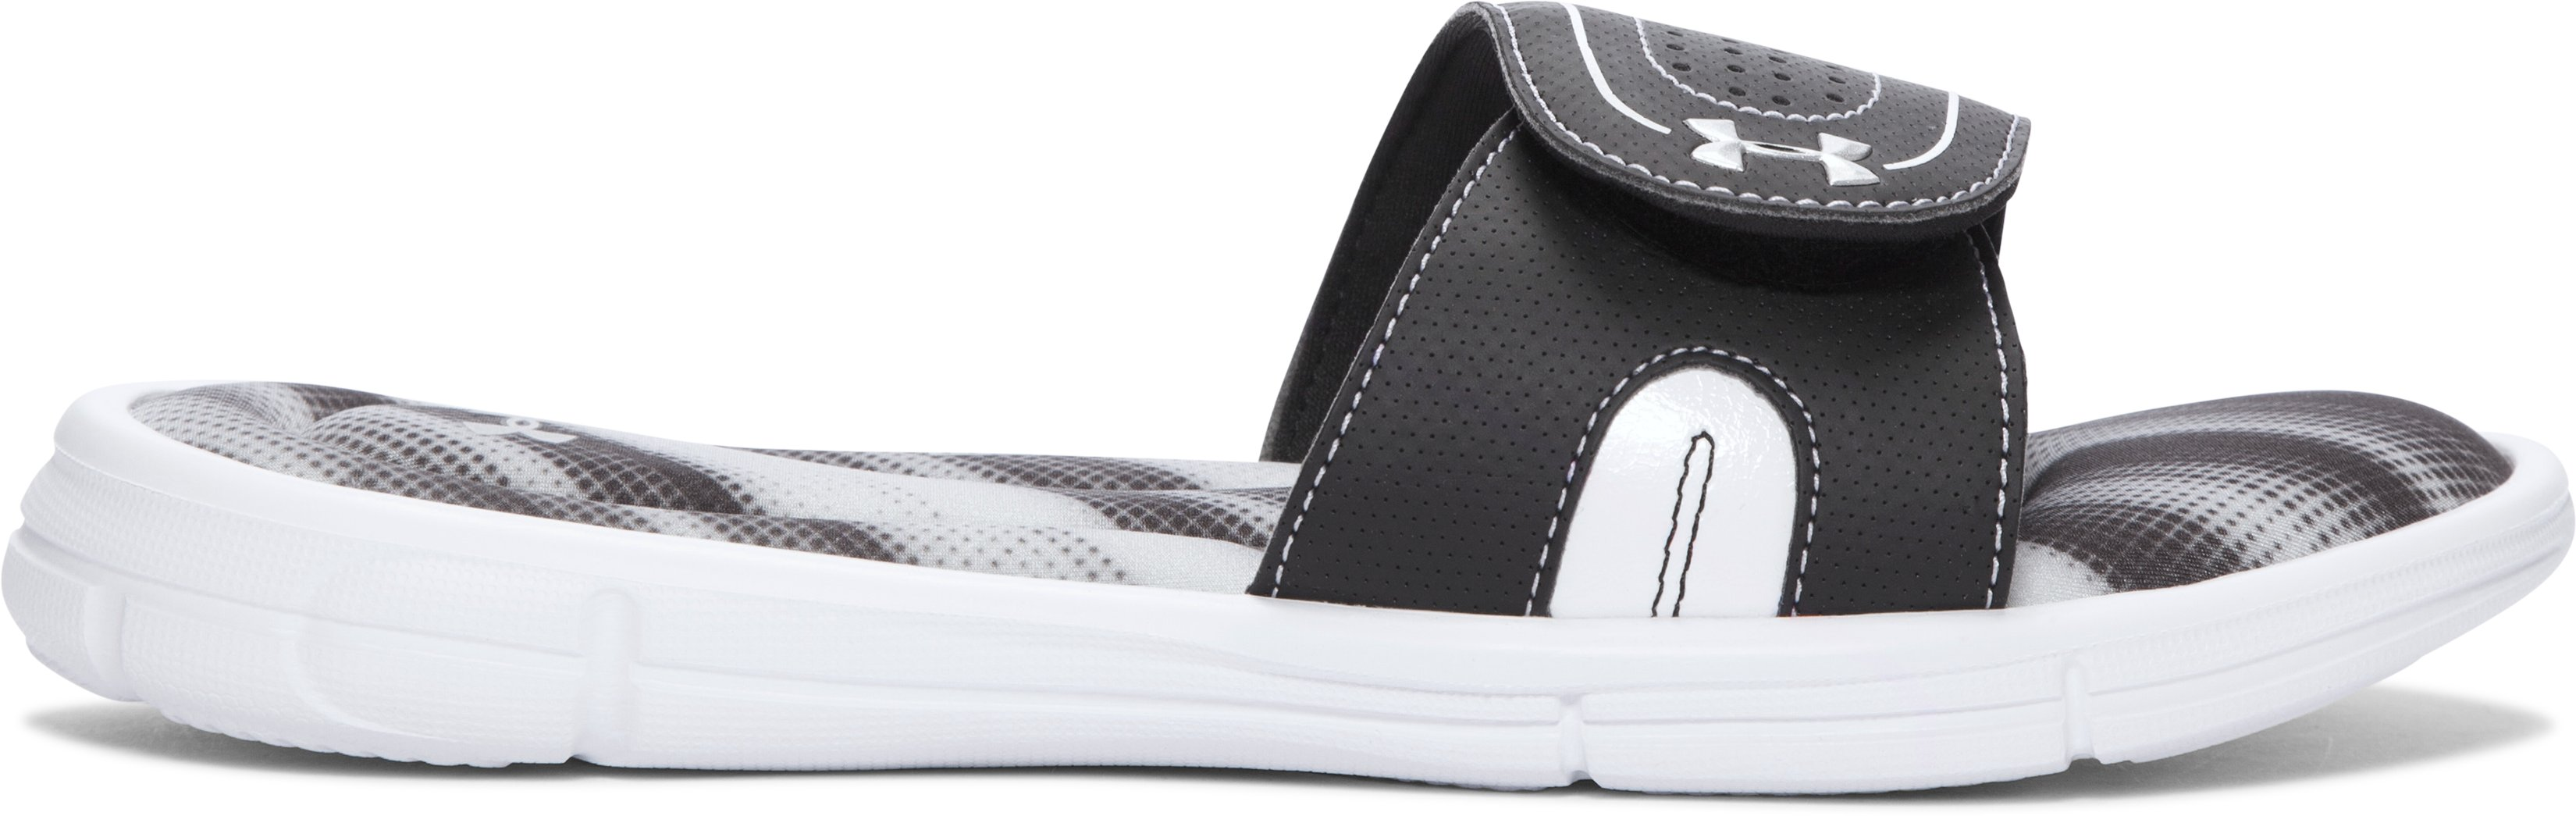 Women's UA Ignite Finisher VIII Slides, GLACIER GRAY